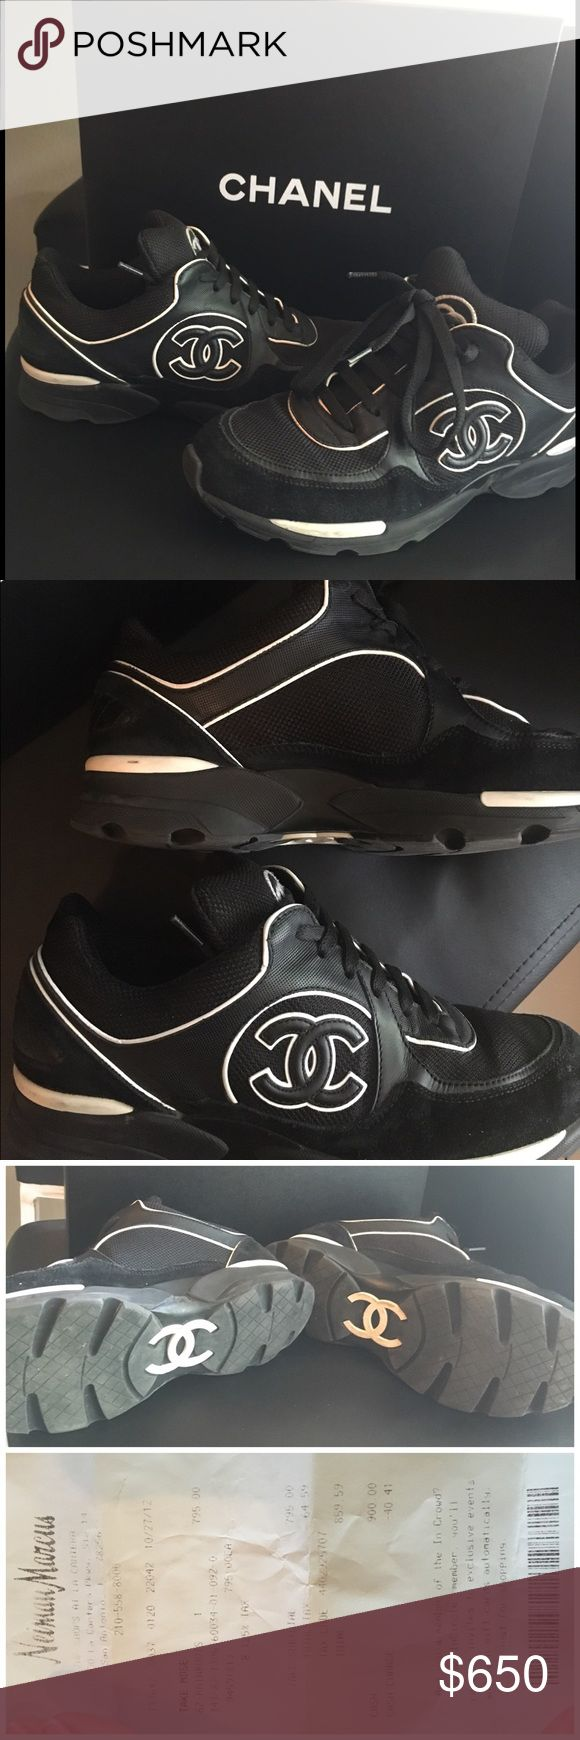 Chanel Tennis shoes authentic Great condition (Auth) Chanel Tennis shoes. Bought them them at Neiman Marcus, box and receipt included. (I have to look for the dust bag though) small mark on the shoe see seconds picture. Worn only 4-5 times since purchase. Hard to find! I am pregnant so my feet are swollen, I can't try them on. NO TRADES, please use offer button to make a reasonable offer. CHANEL Shoes Sneakers